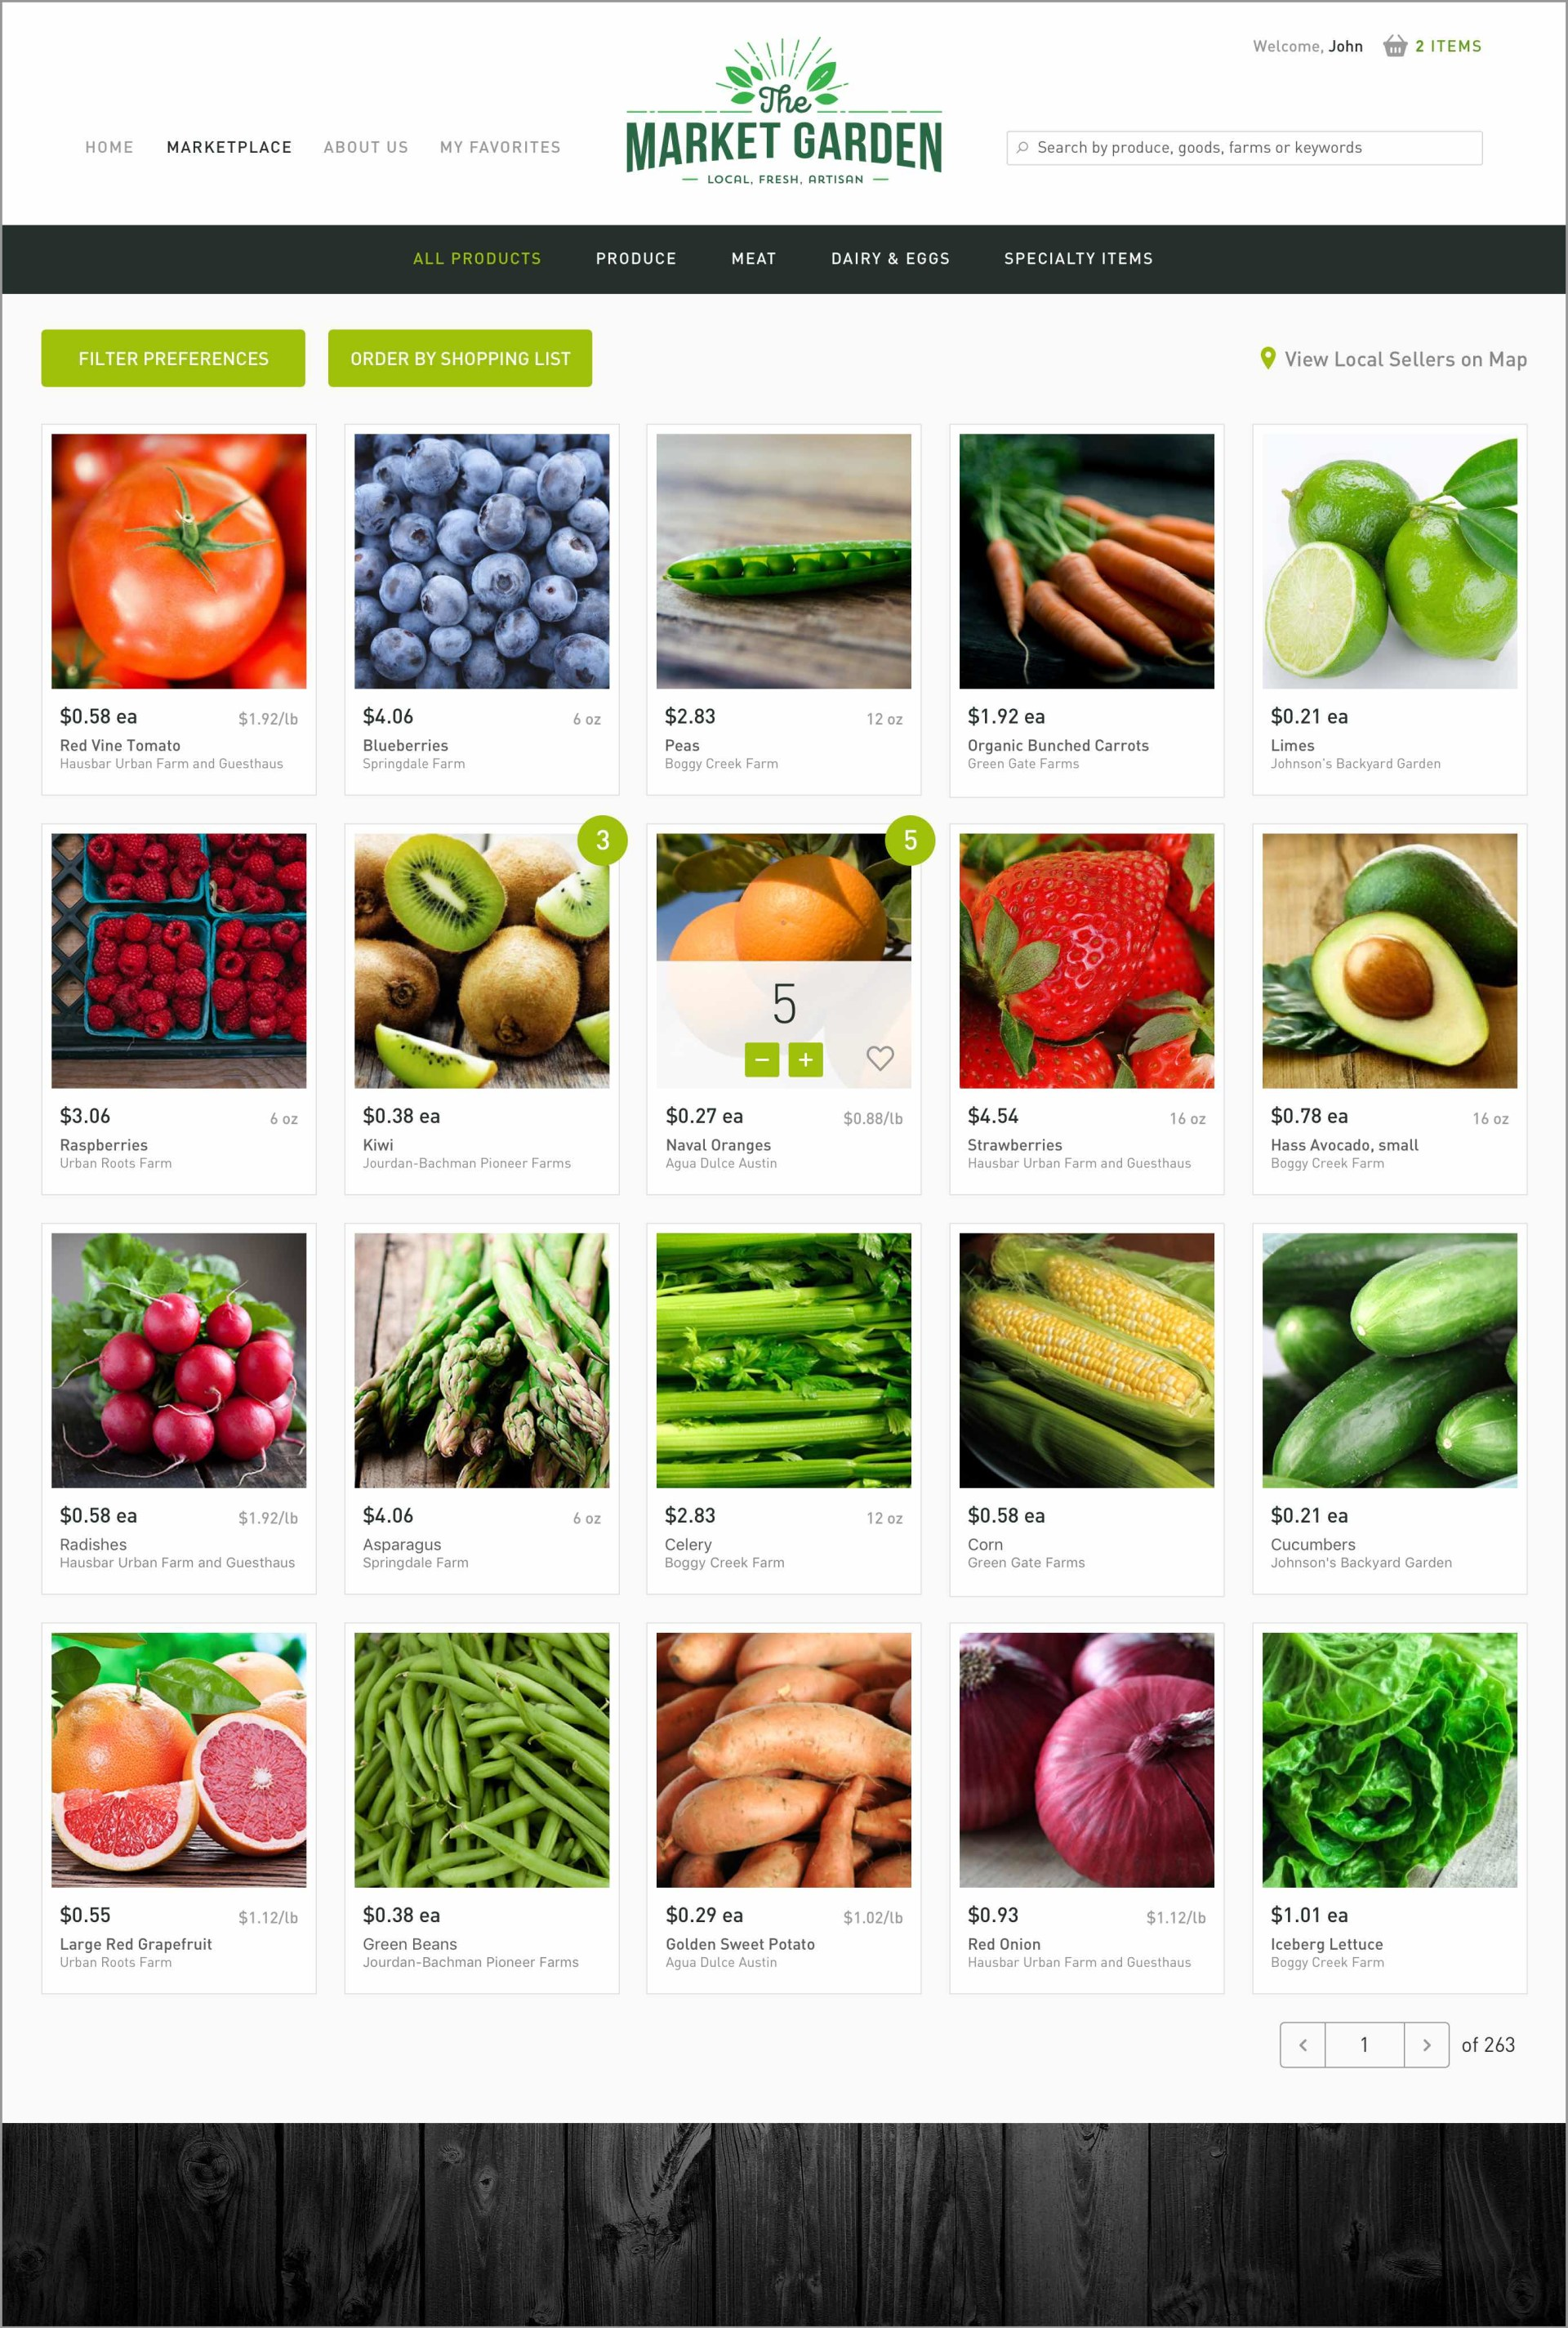 The Market Garden Products Page